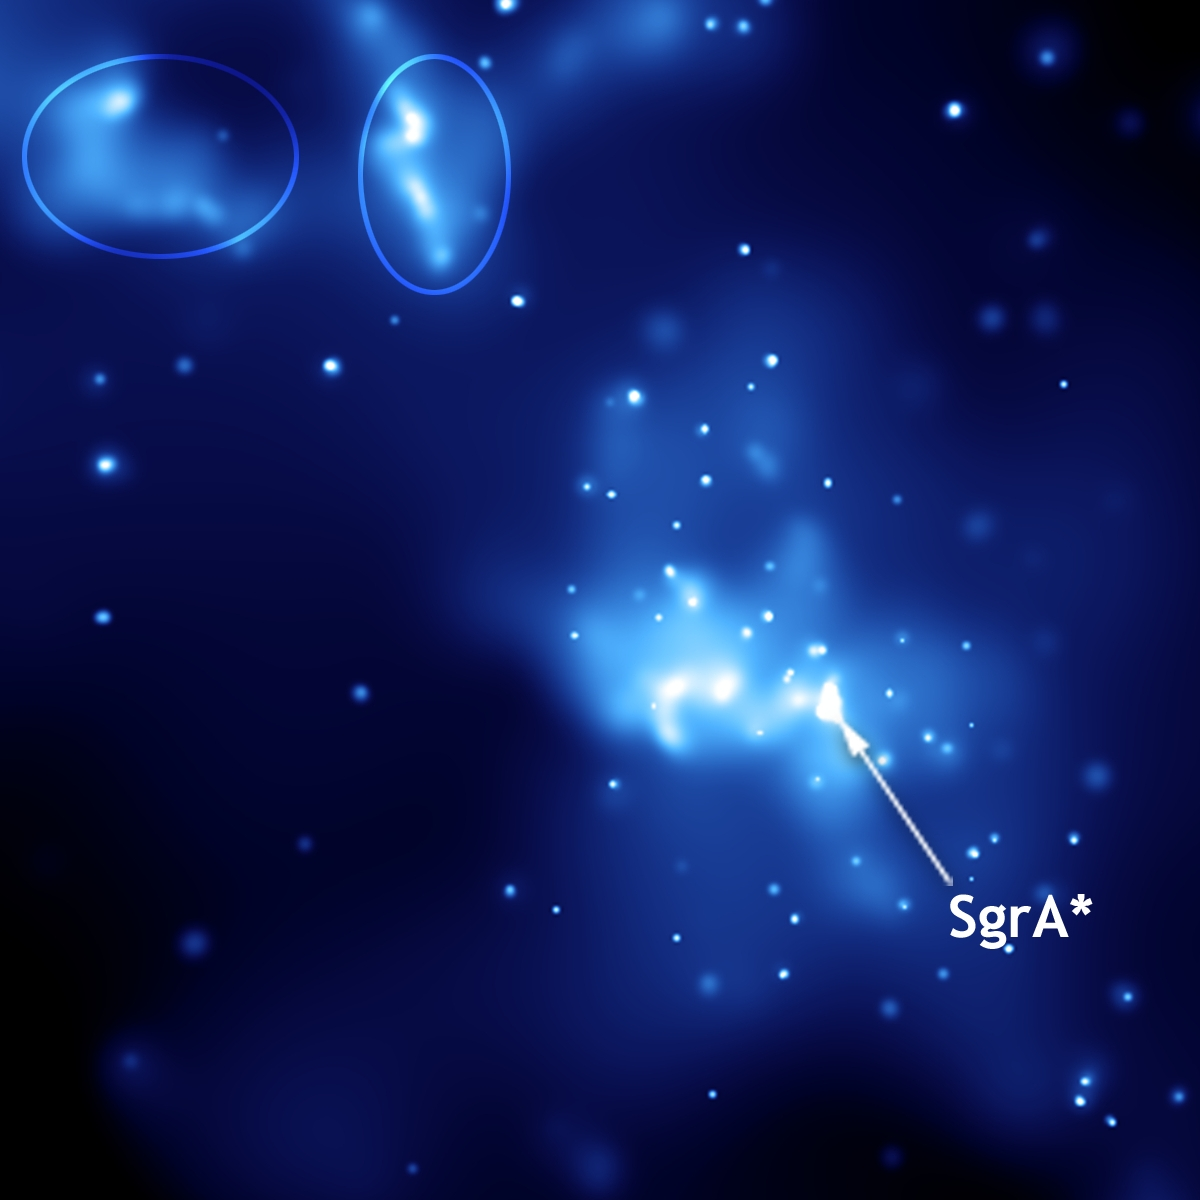 https://upload.wikimedia.org/wikipedia/commons/7/7e/Sagittarius_A%2A.jpg